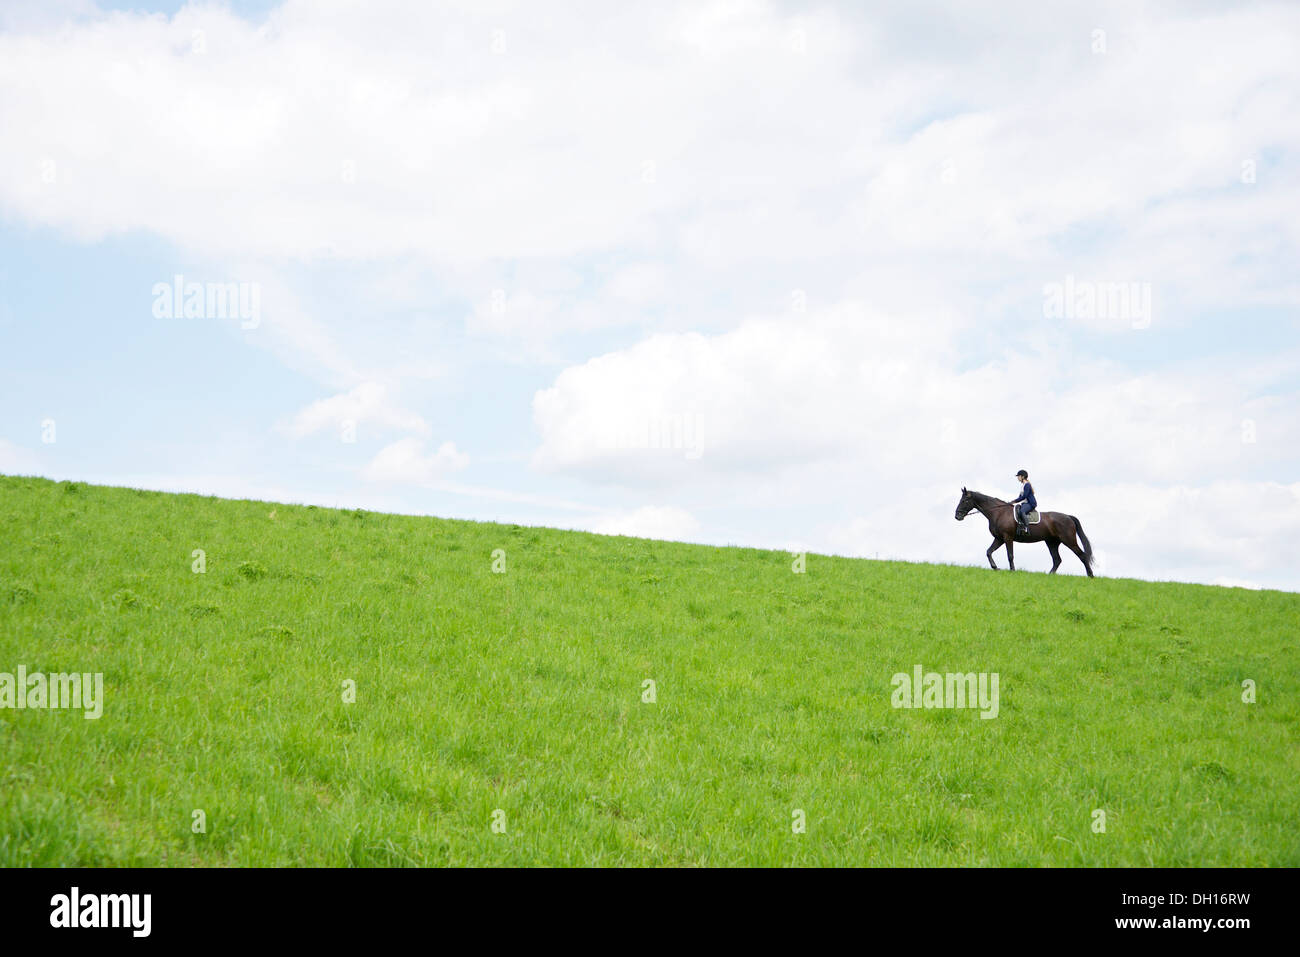 Woman Riding Horse in Rural Landscape, Baden Wuerttemberg, Germany, Europe - Stock Image